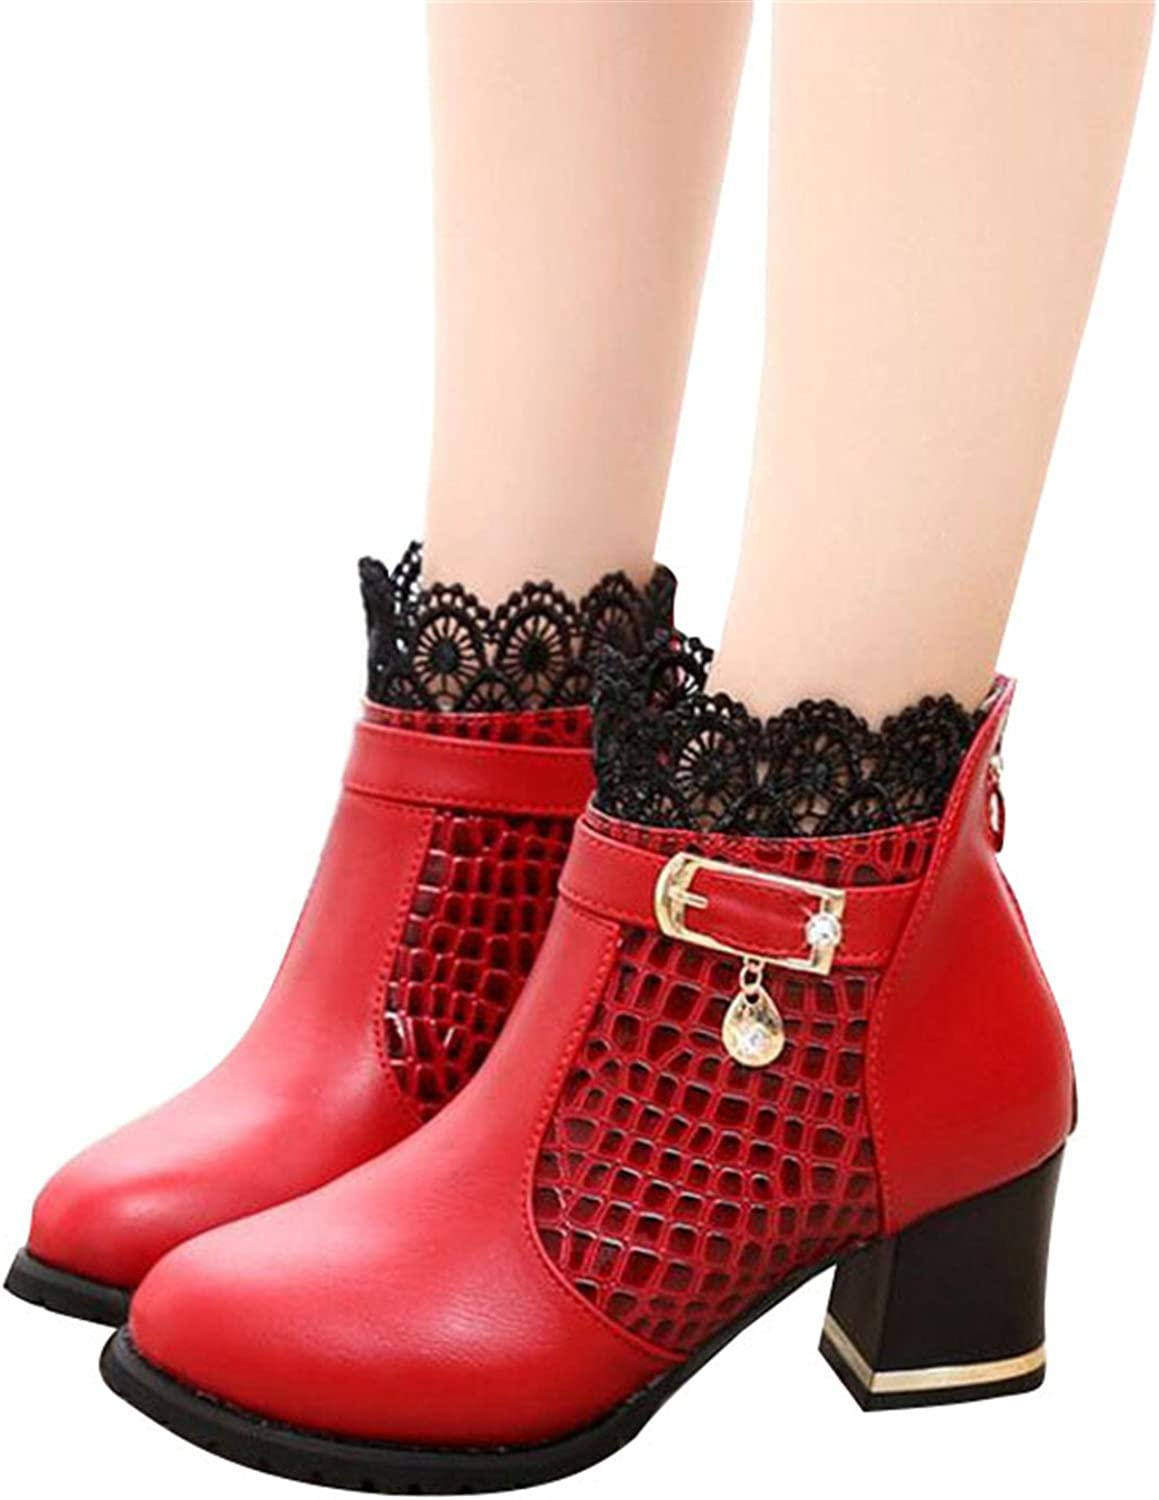 Phillip Dudley Zip Women Boots Thick Heel Platform shoes Buckle Autumn Winter Sexy Boots Riding Ankle Boots